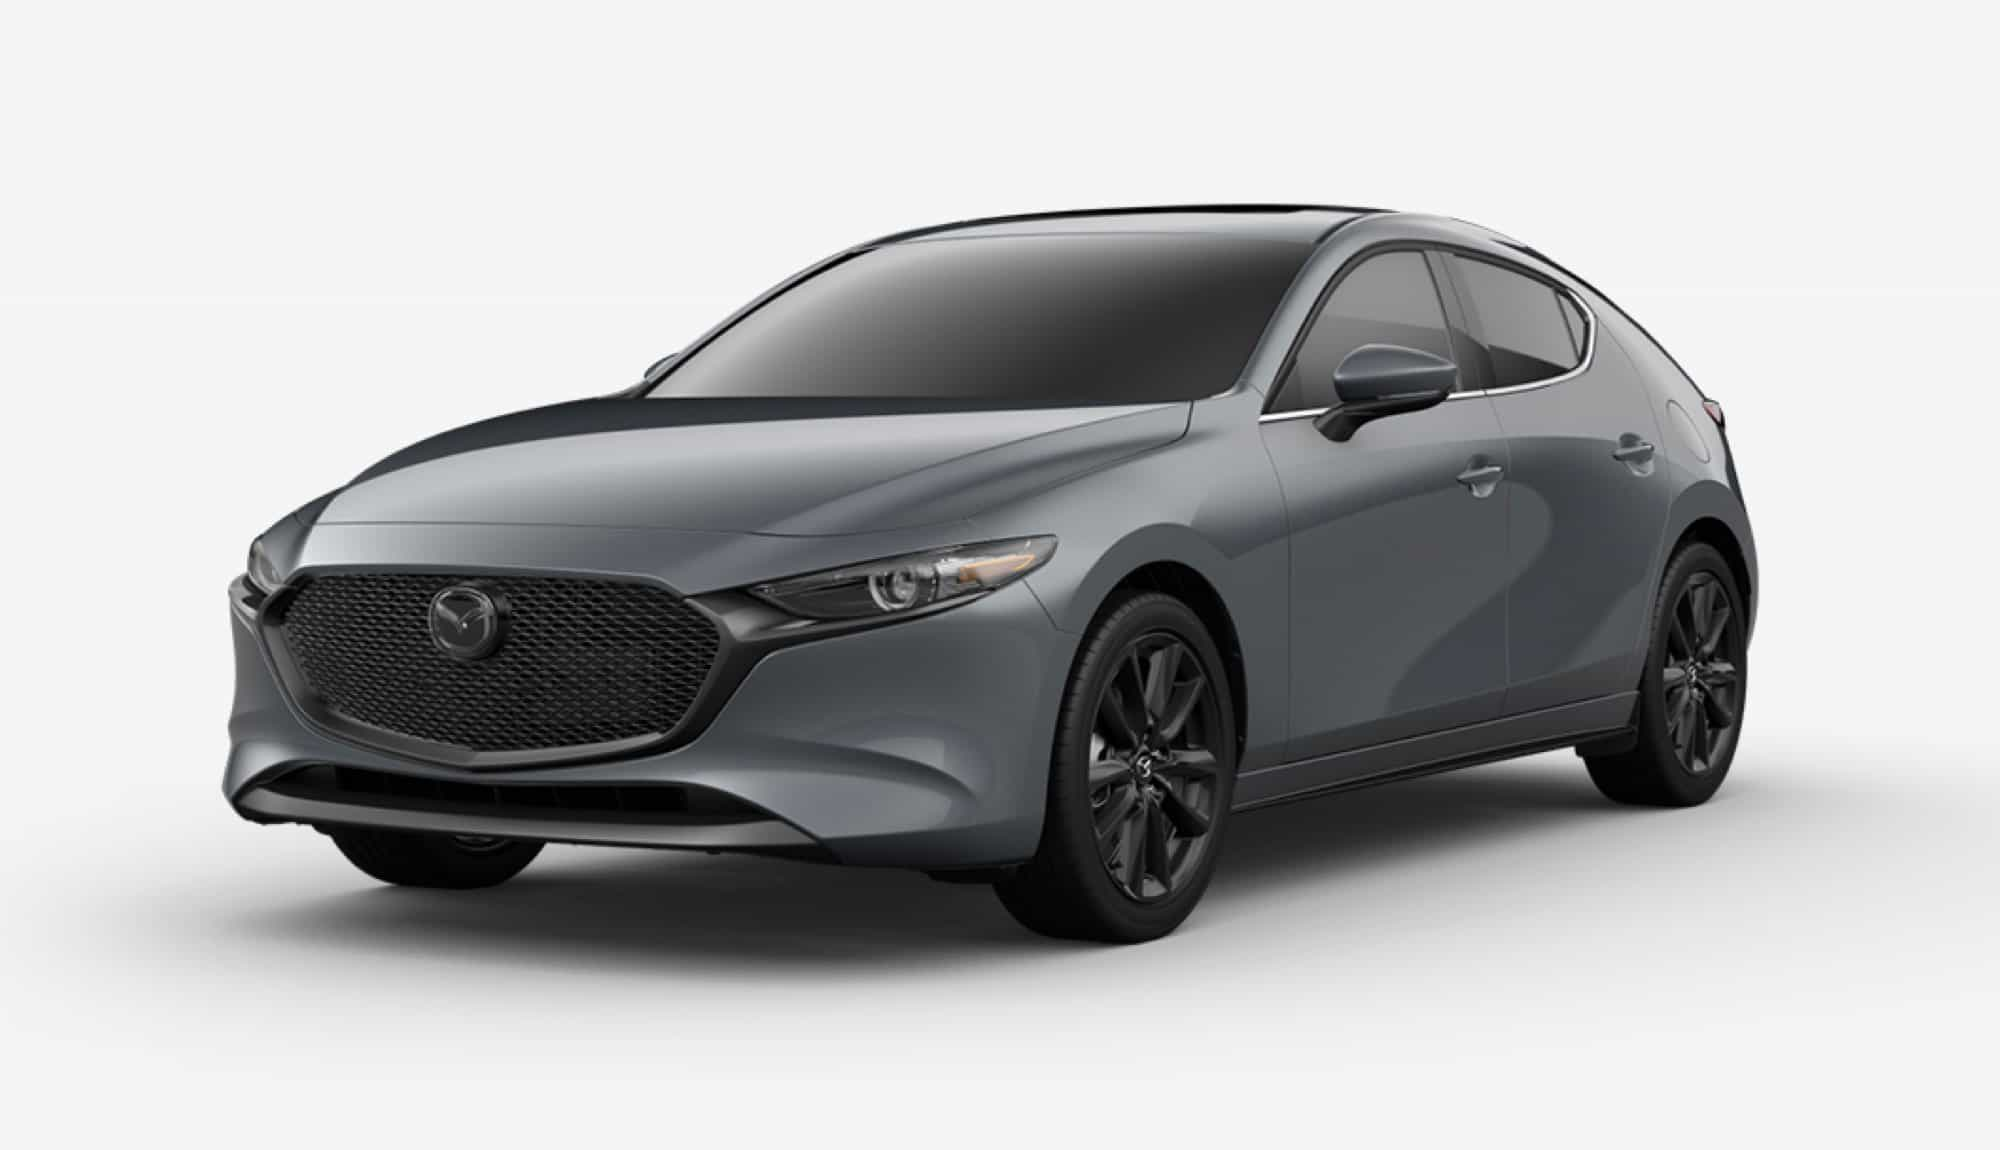 2020 Mazda3 Hatchback, Polymetal Gray Metallic